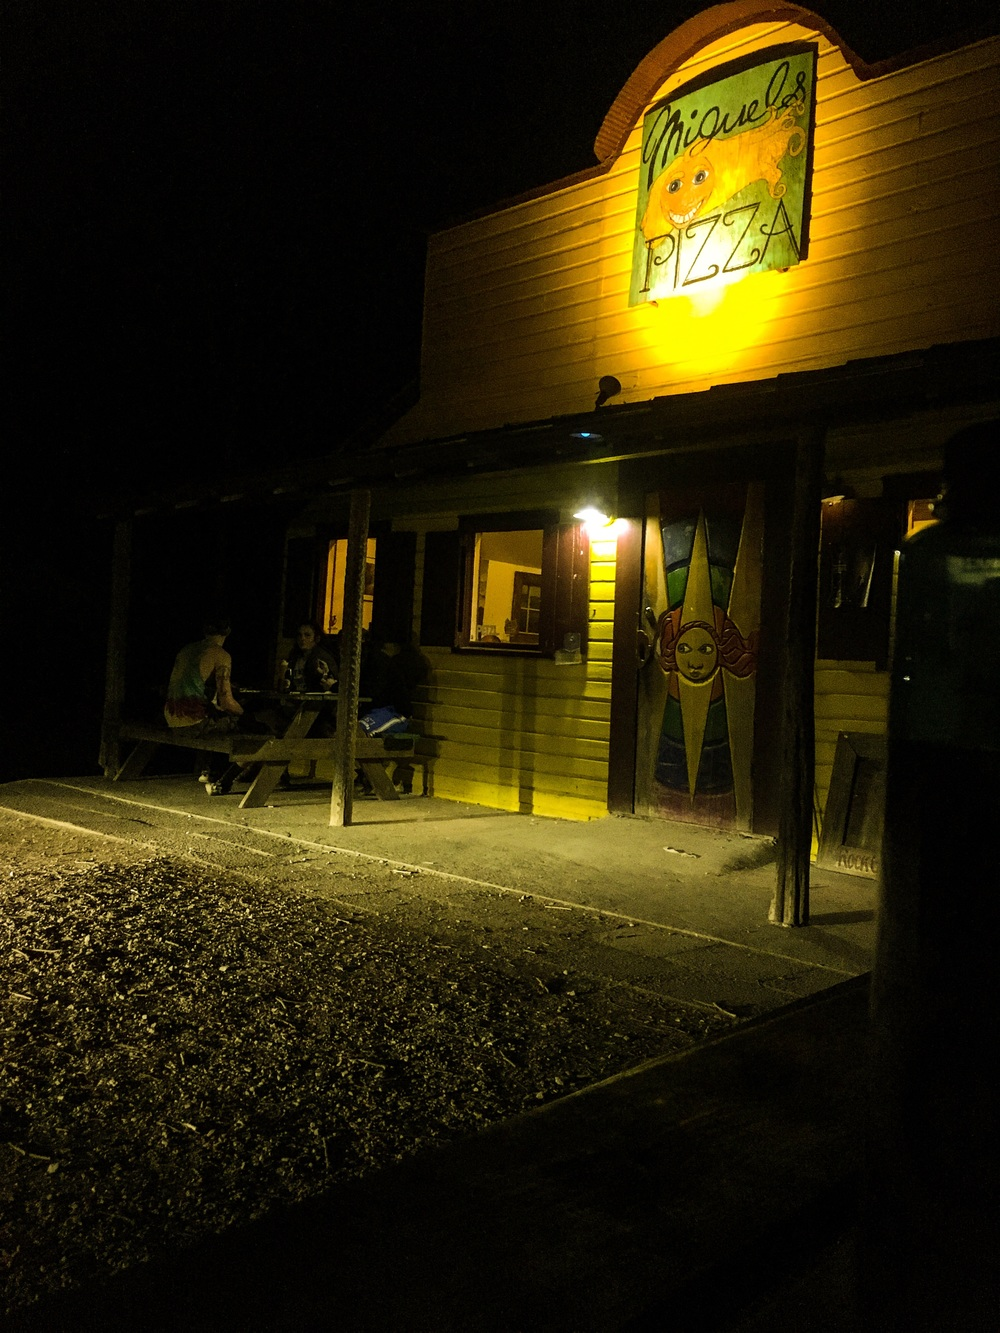 Miguel's at night. This place was crawling with climbers. It was beautiful out and perfect weather for camping and climbing.